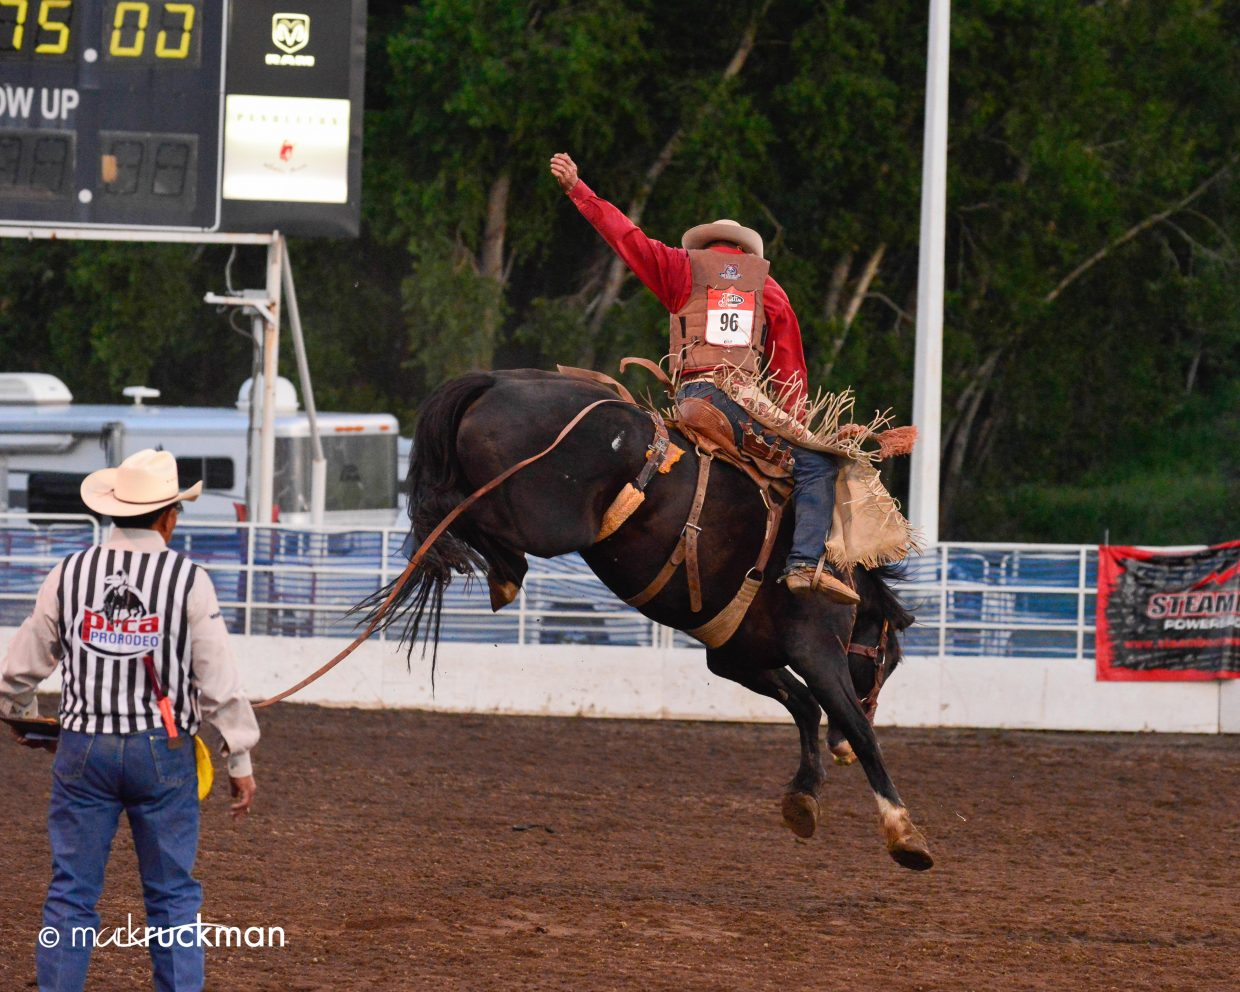 A great time was had at the Steamboat rodeo Saturday night. Submitted by: Mark Ruckman